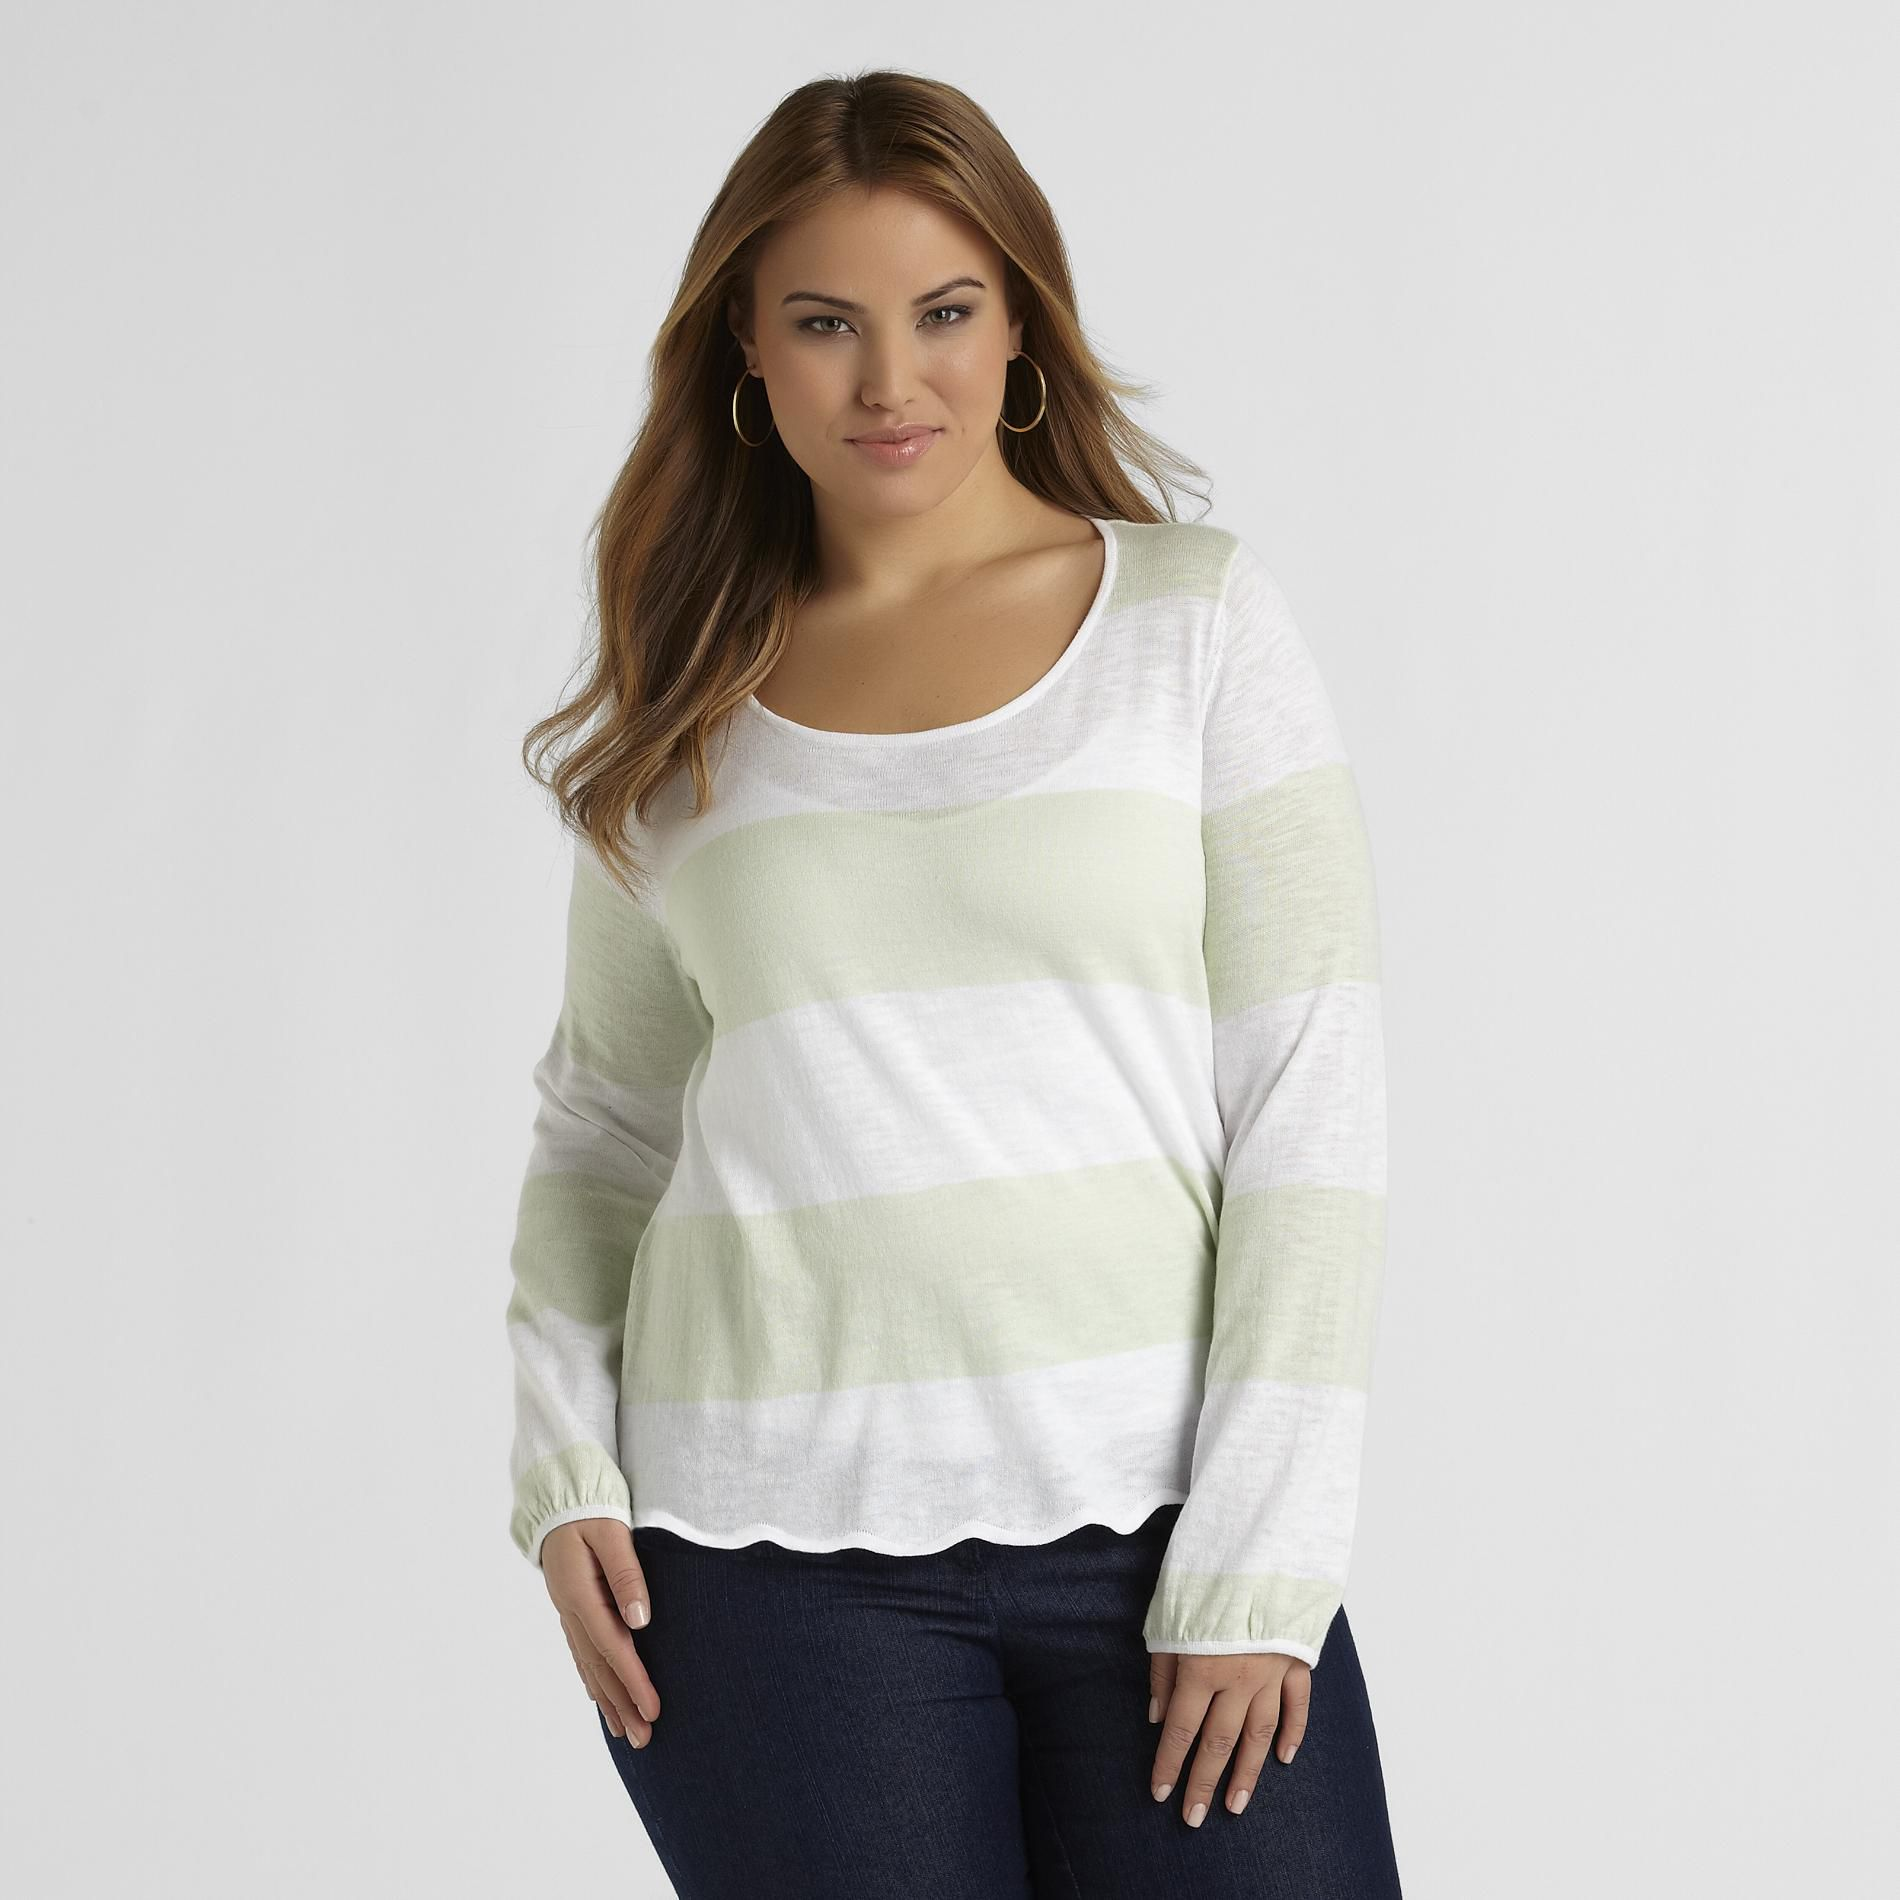 Love Your Style, Love Your Size Women's Plus Sweater - Stripes at Kmart.com